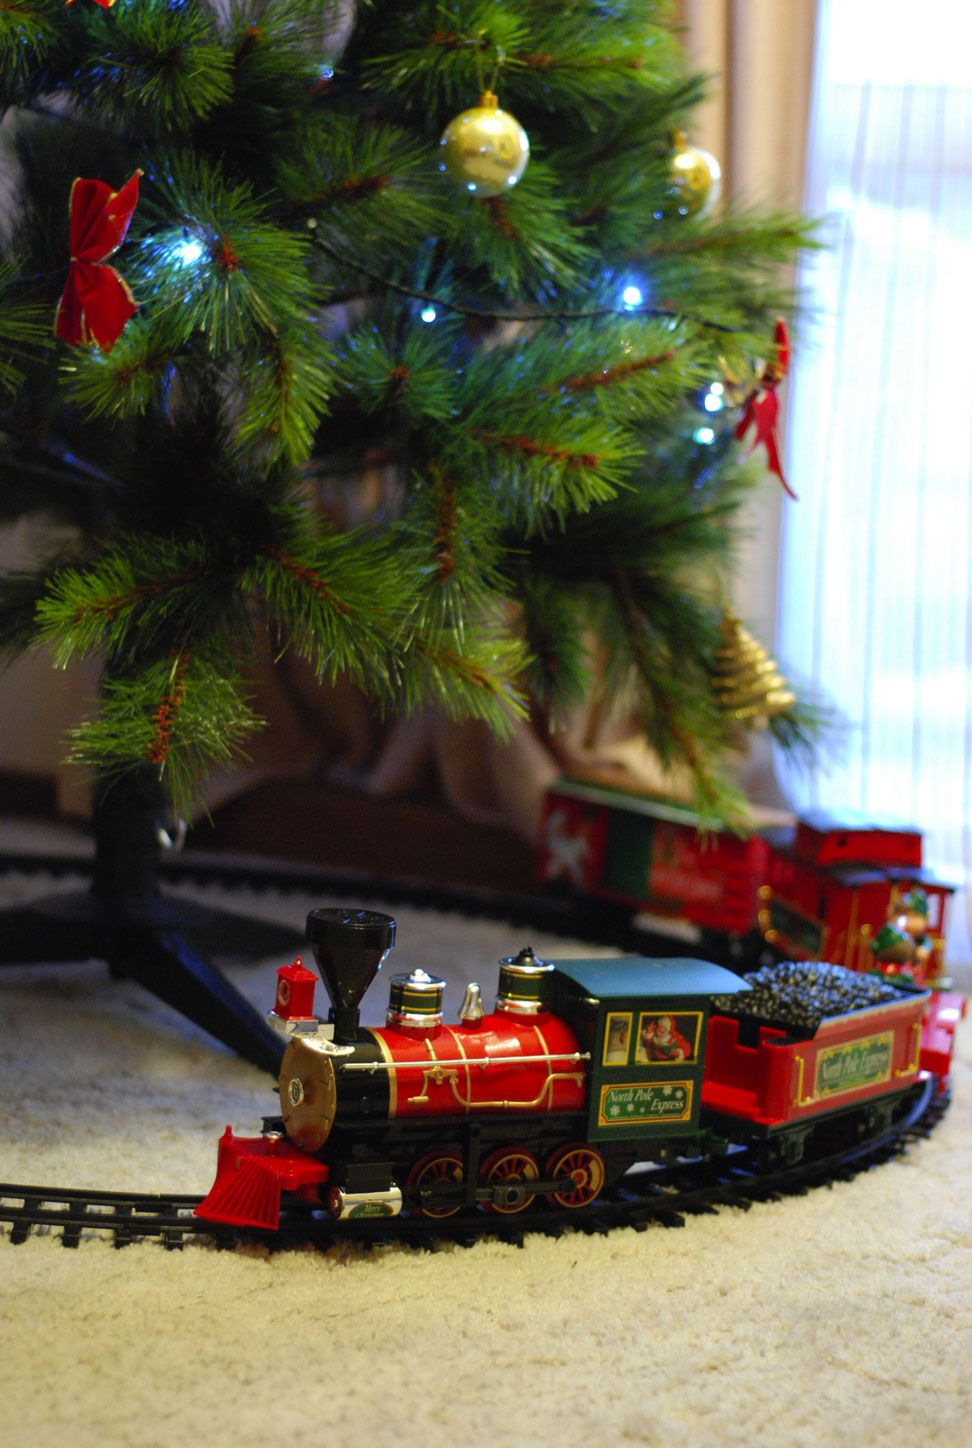 Loving the Traditional Train set under the Christmas tree ...